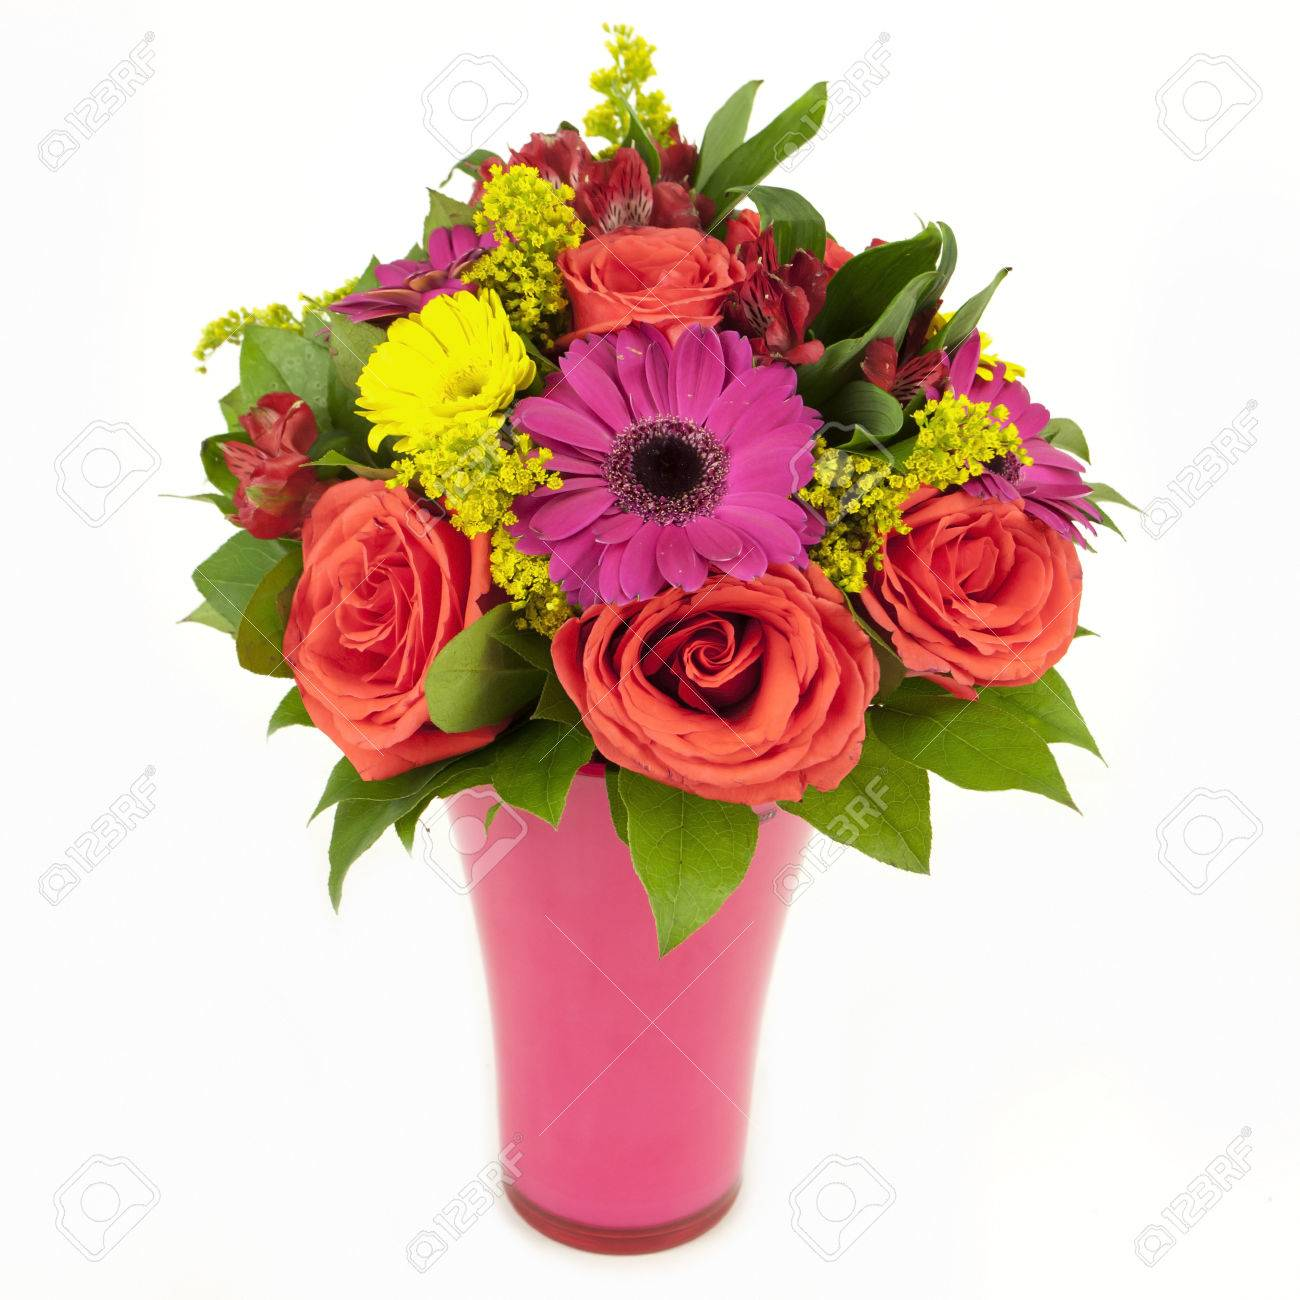 Bouquet Of Pink And Yellow Flowers In Vase Isolated On White Stock